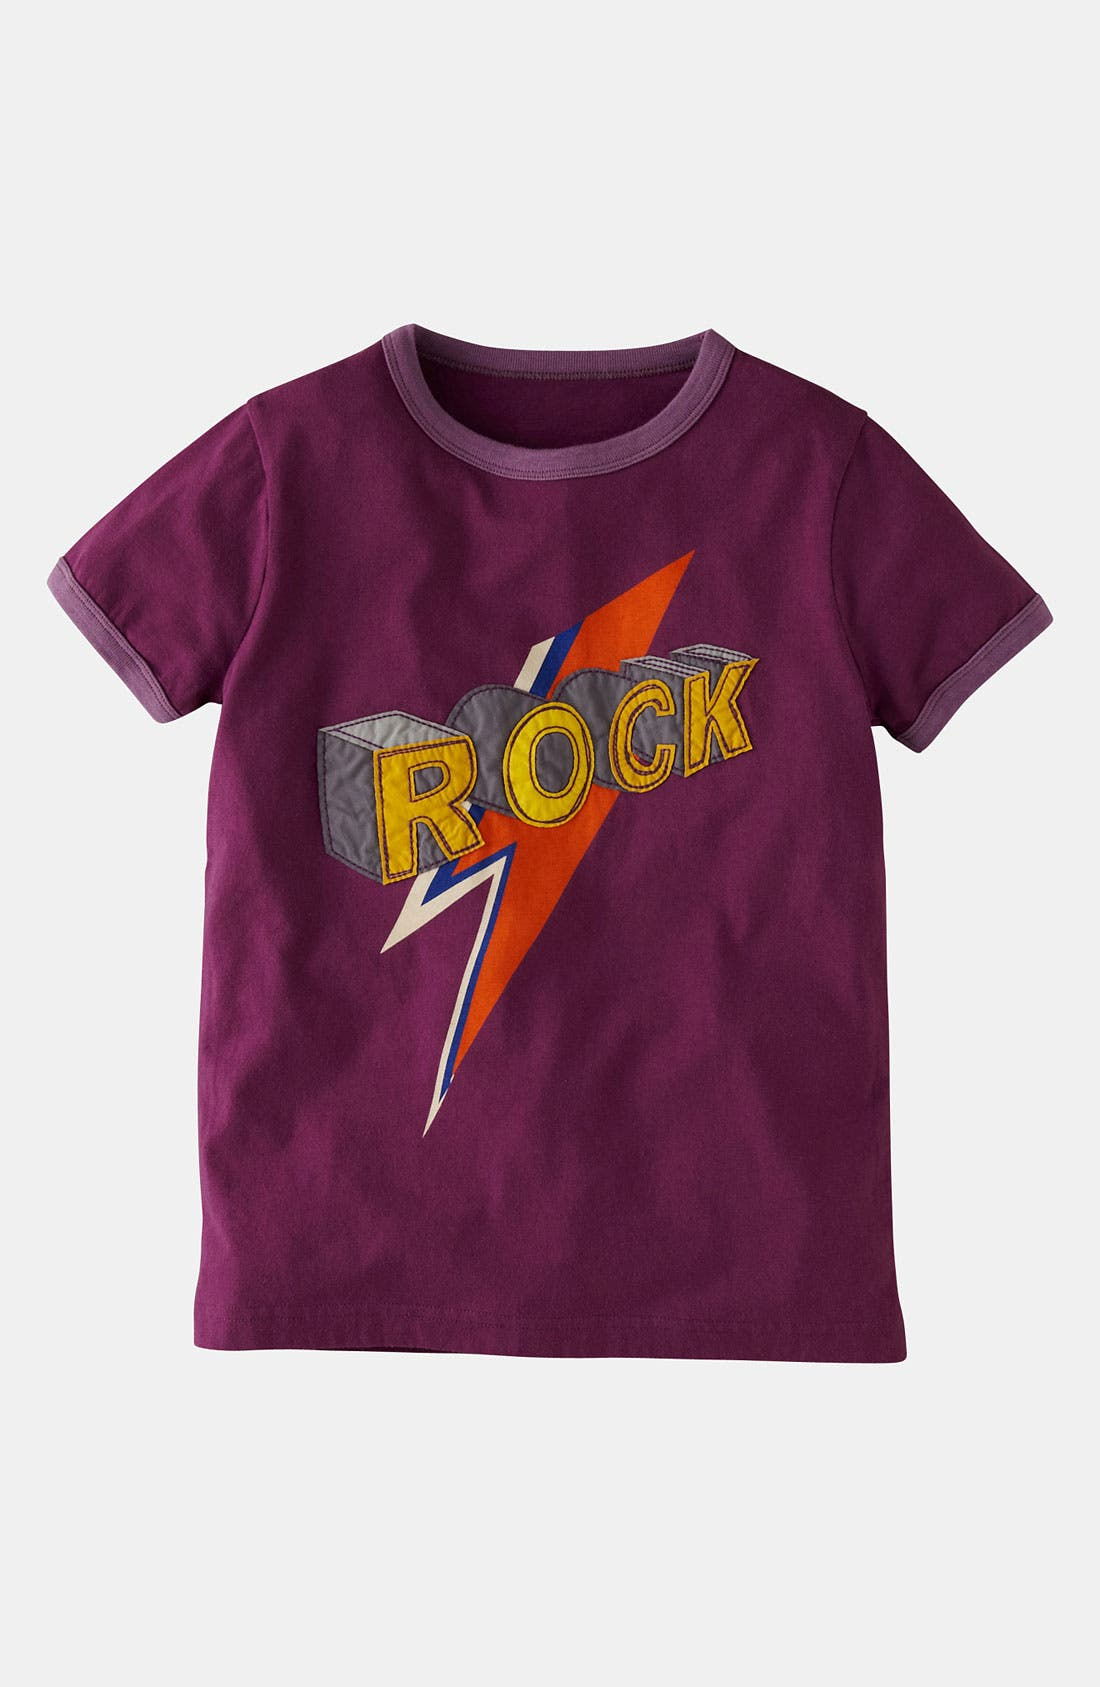 Alternate Image 1 Selected - Mini Boden 'Rock' T-Shirt (Big Boys)